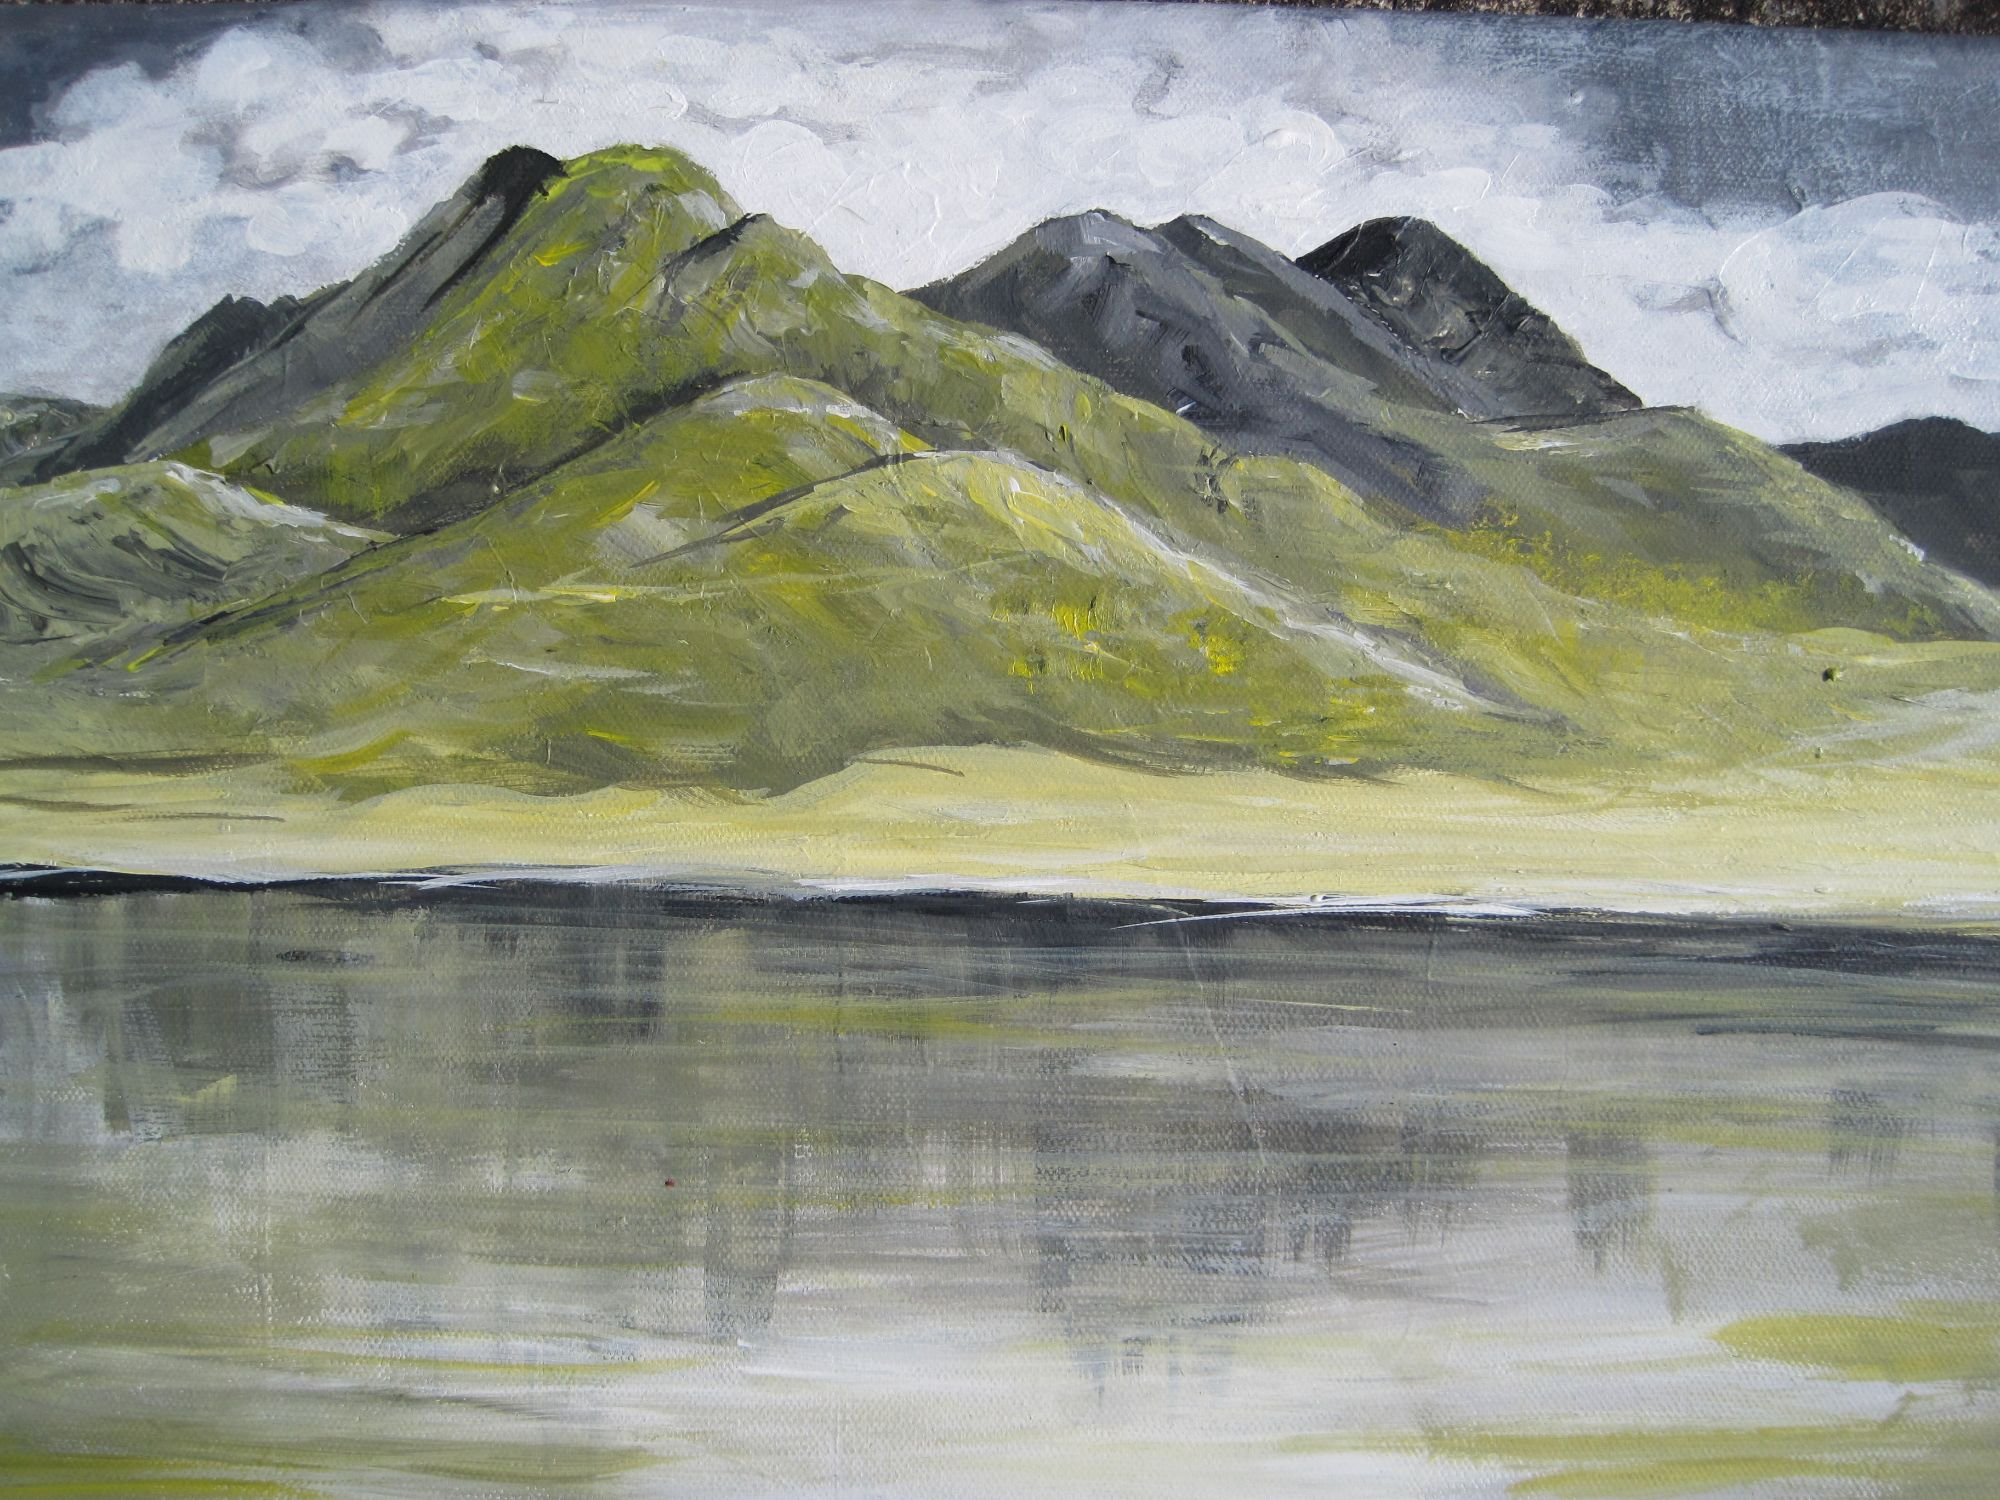 Lake and Mountains   ________________________________ acrylic on canvas  (30cm x 40cm)           £35